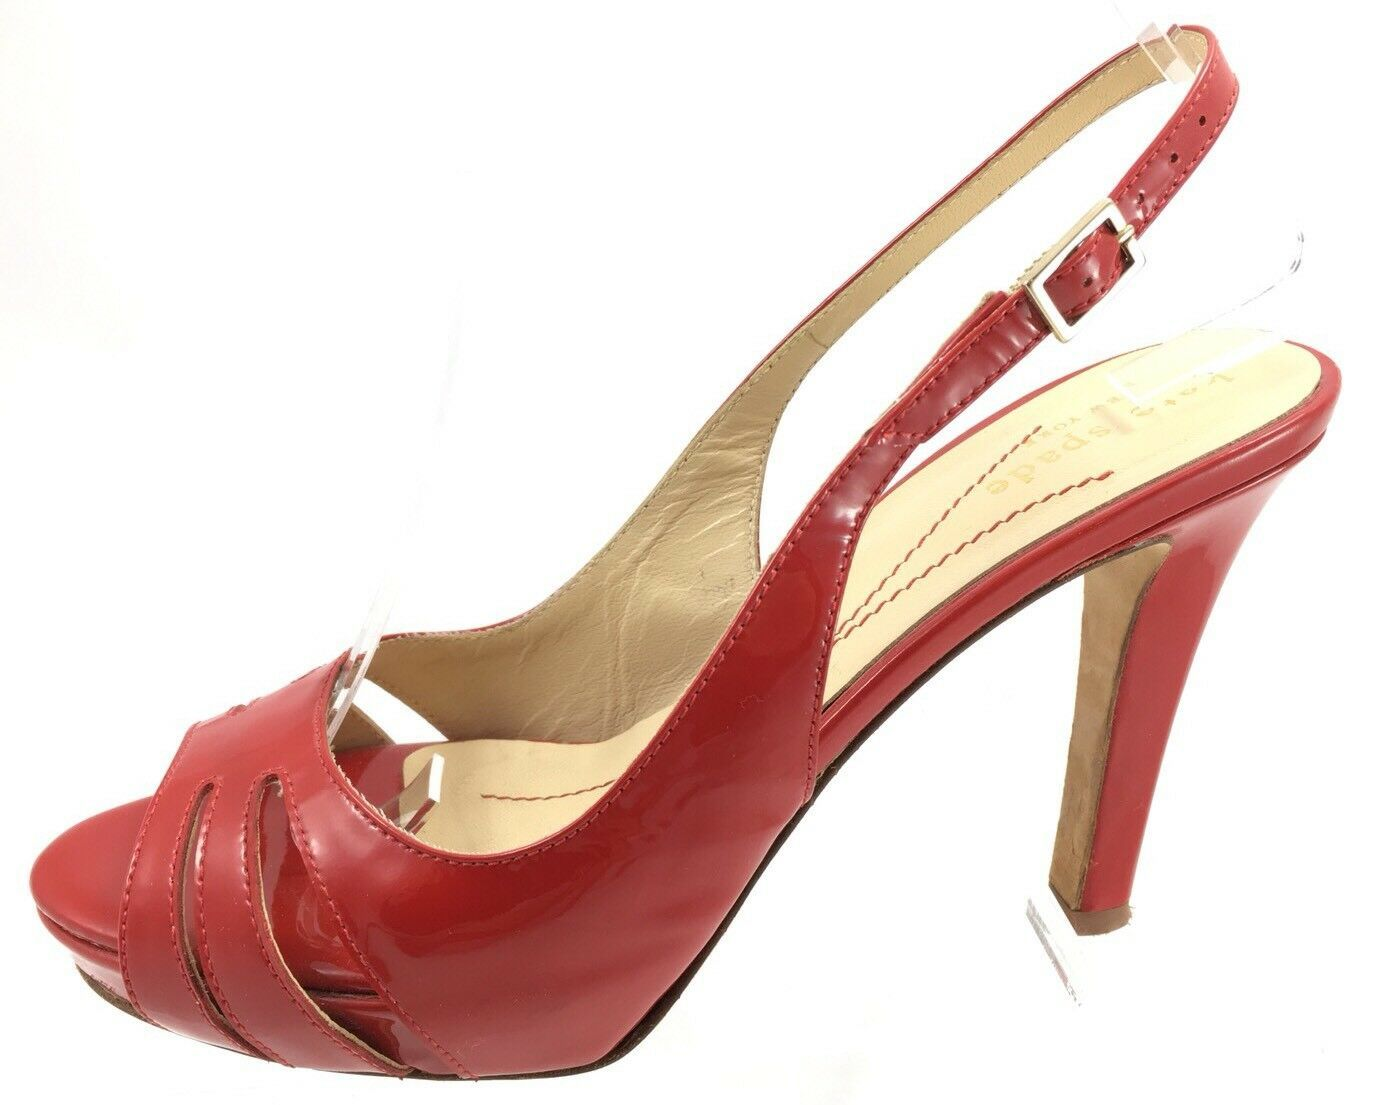 SH15 Kate Spade 5.5B Italy Red Patent Leather Slingback Open Peep Toe High Heels - $37.61